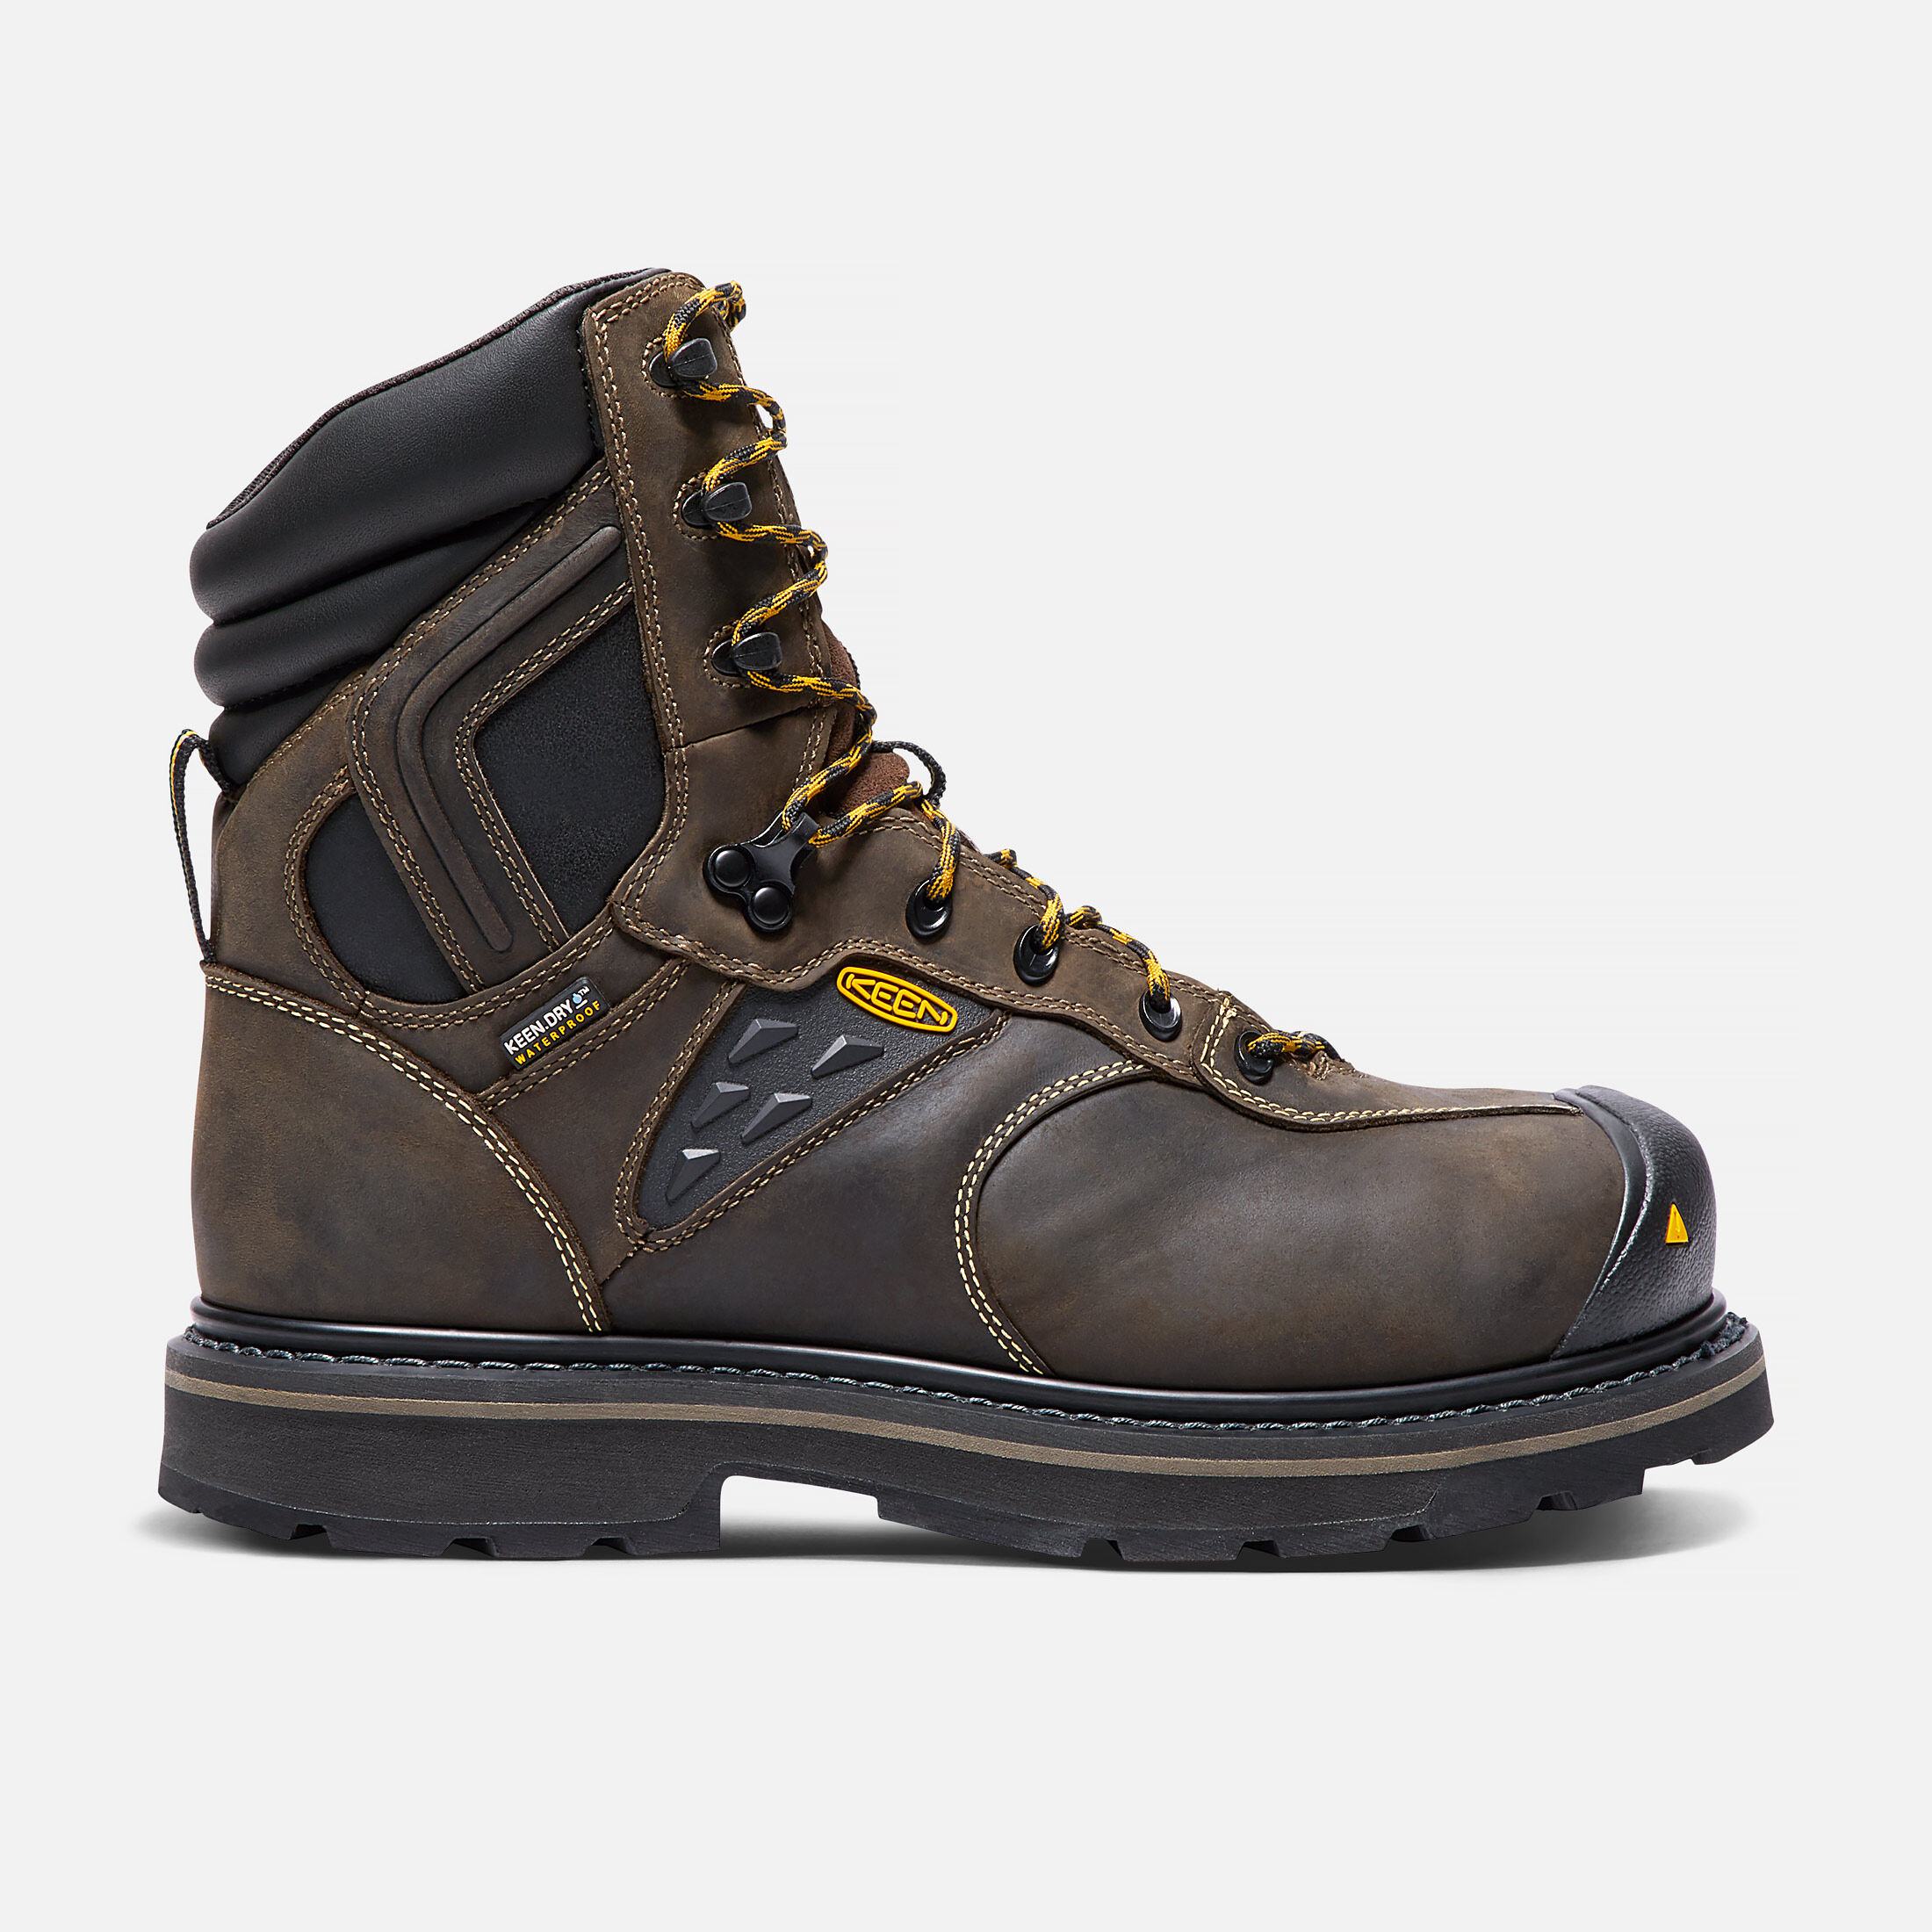 big 5 steel toe work boots Sale,up to